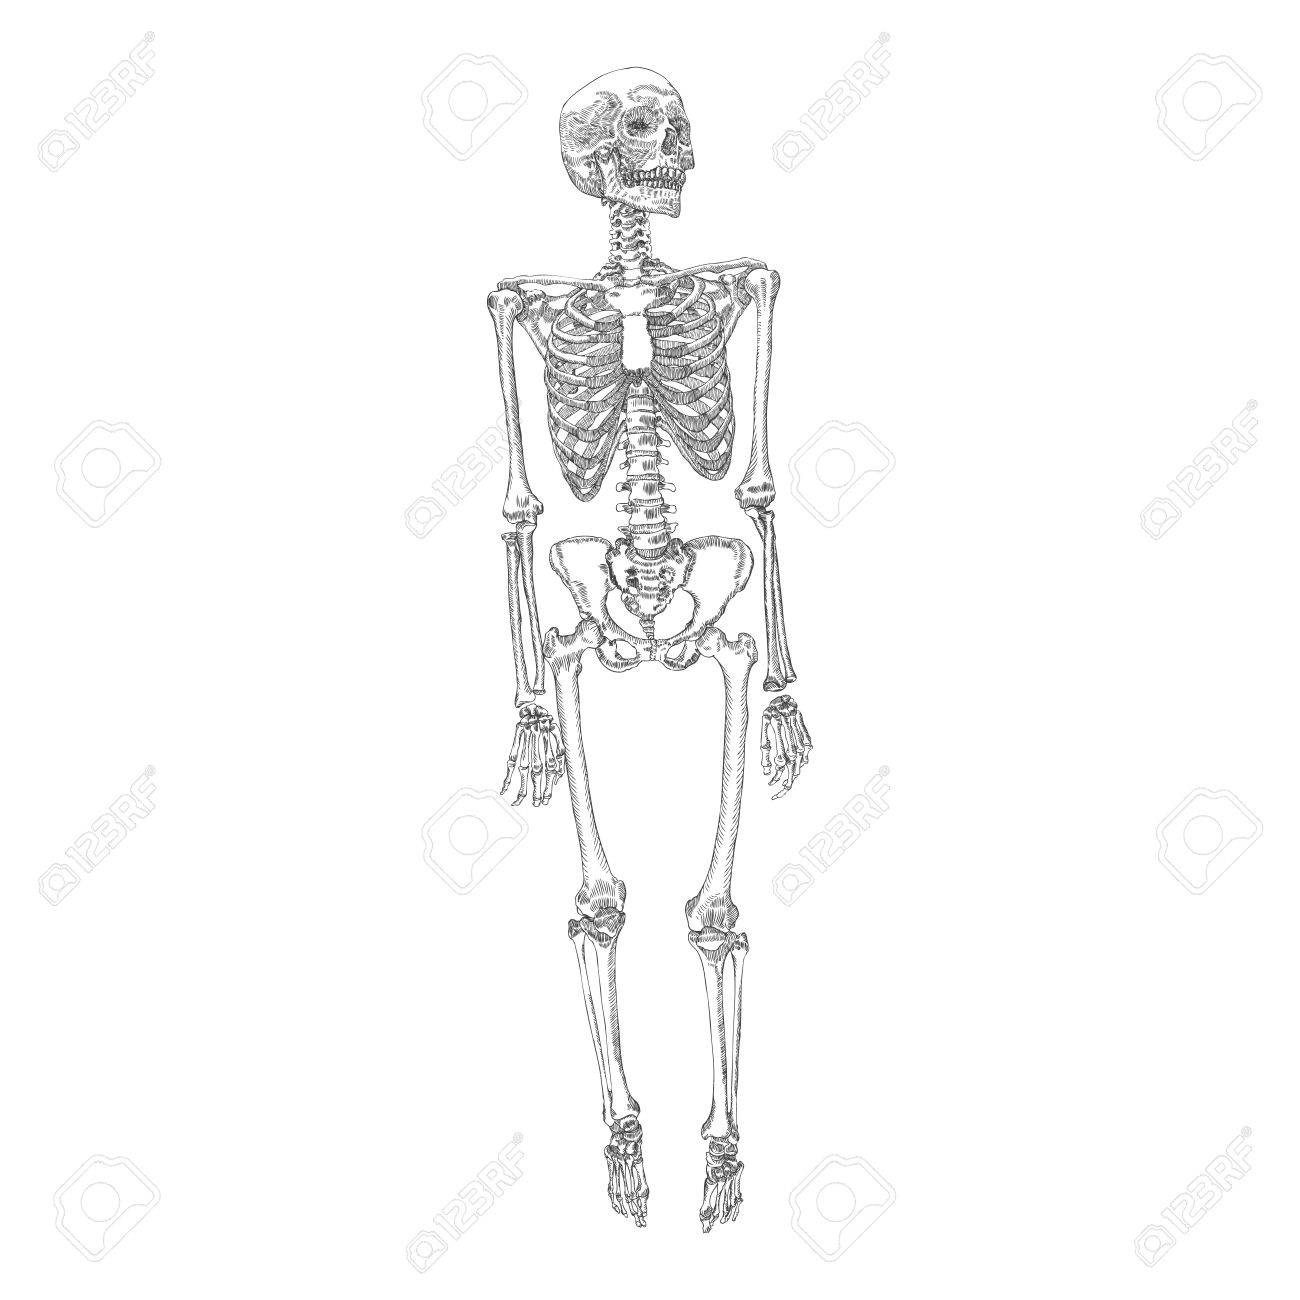 hight resolution of human bones skeleton standing drawing with arms legs skull vector illustration